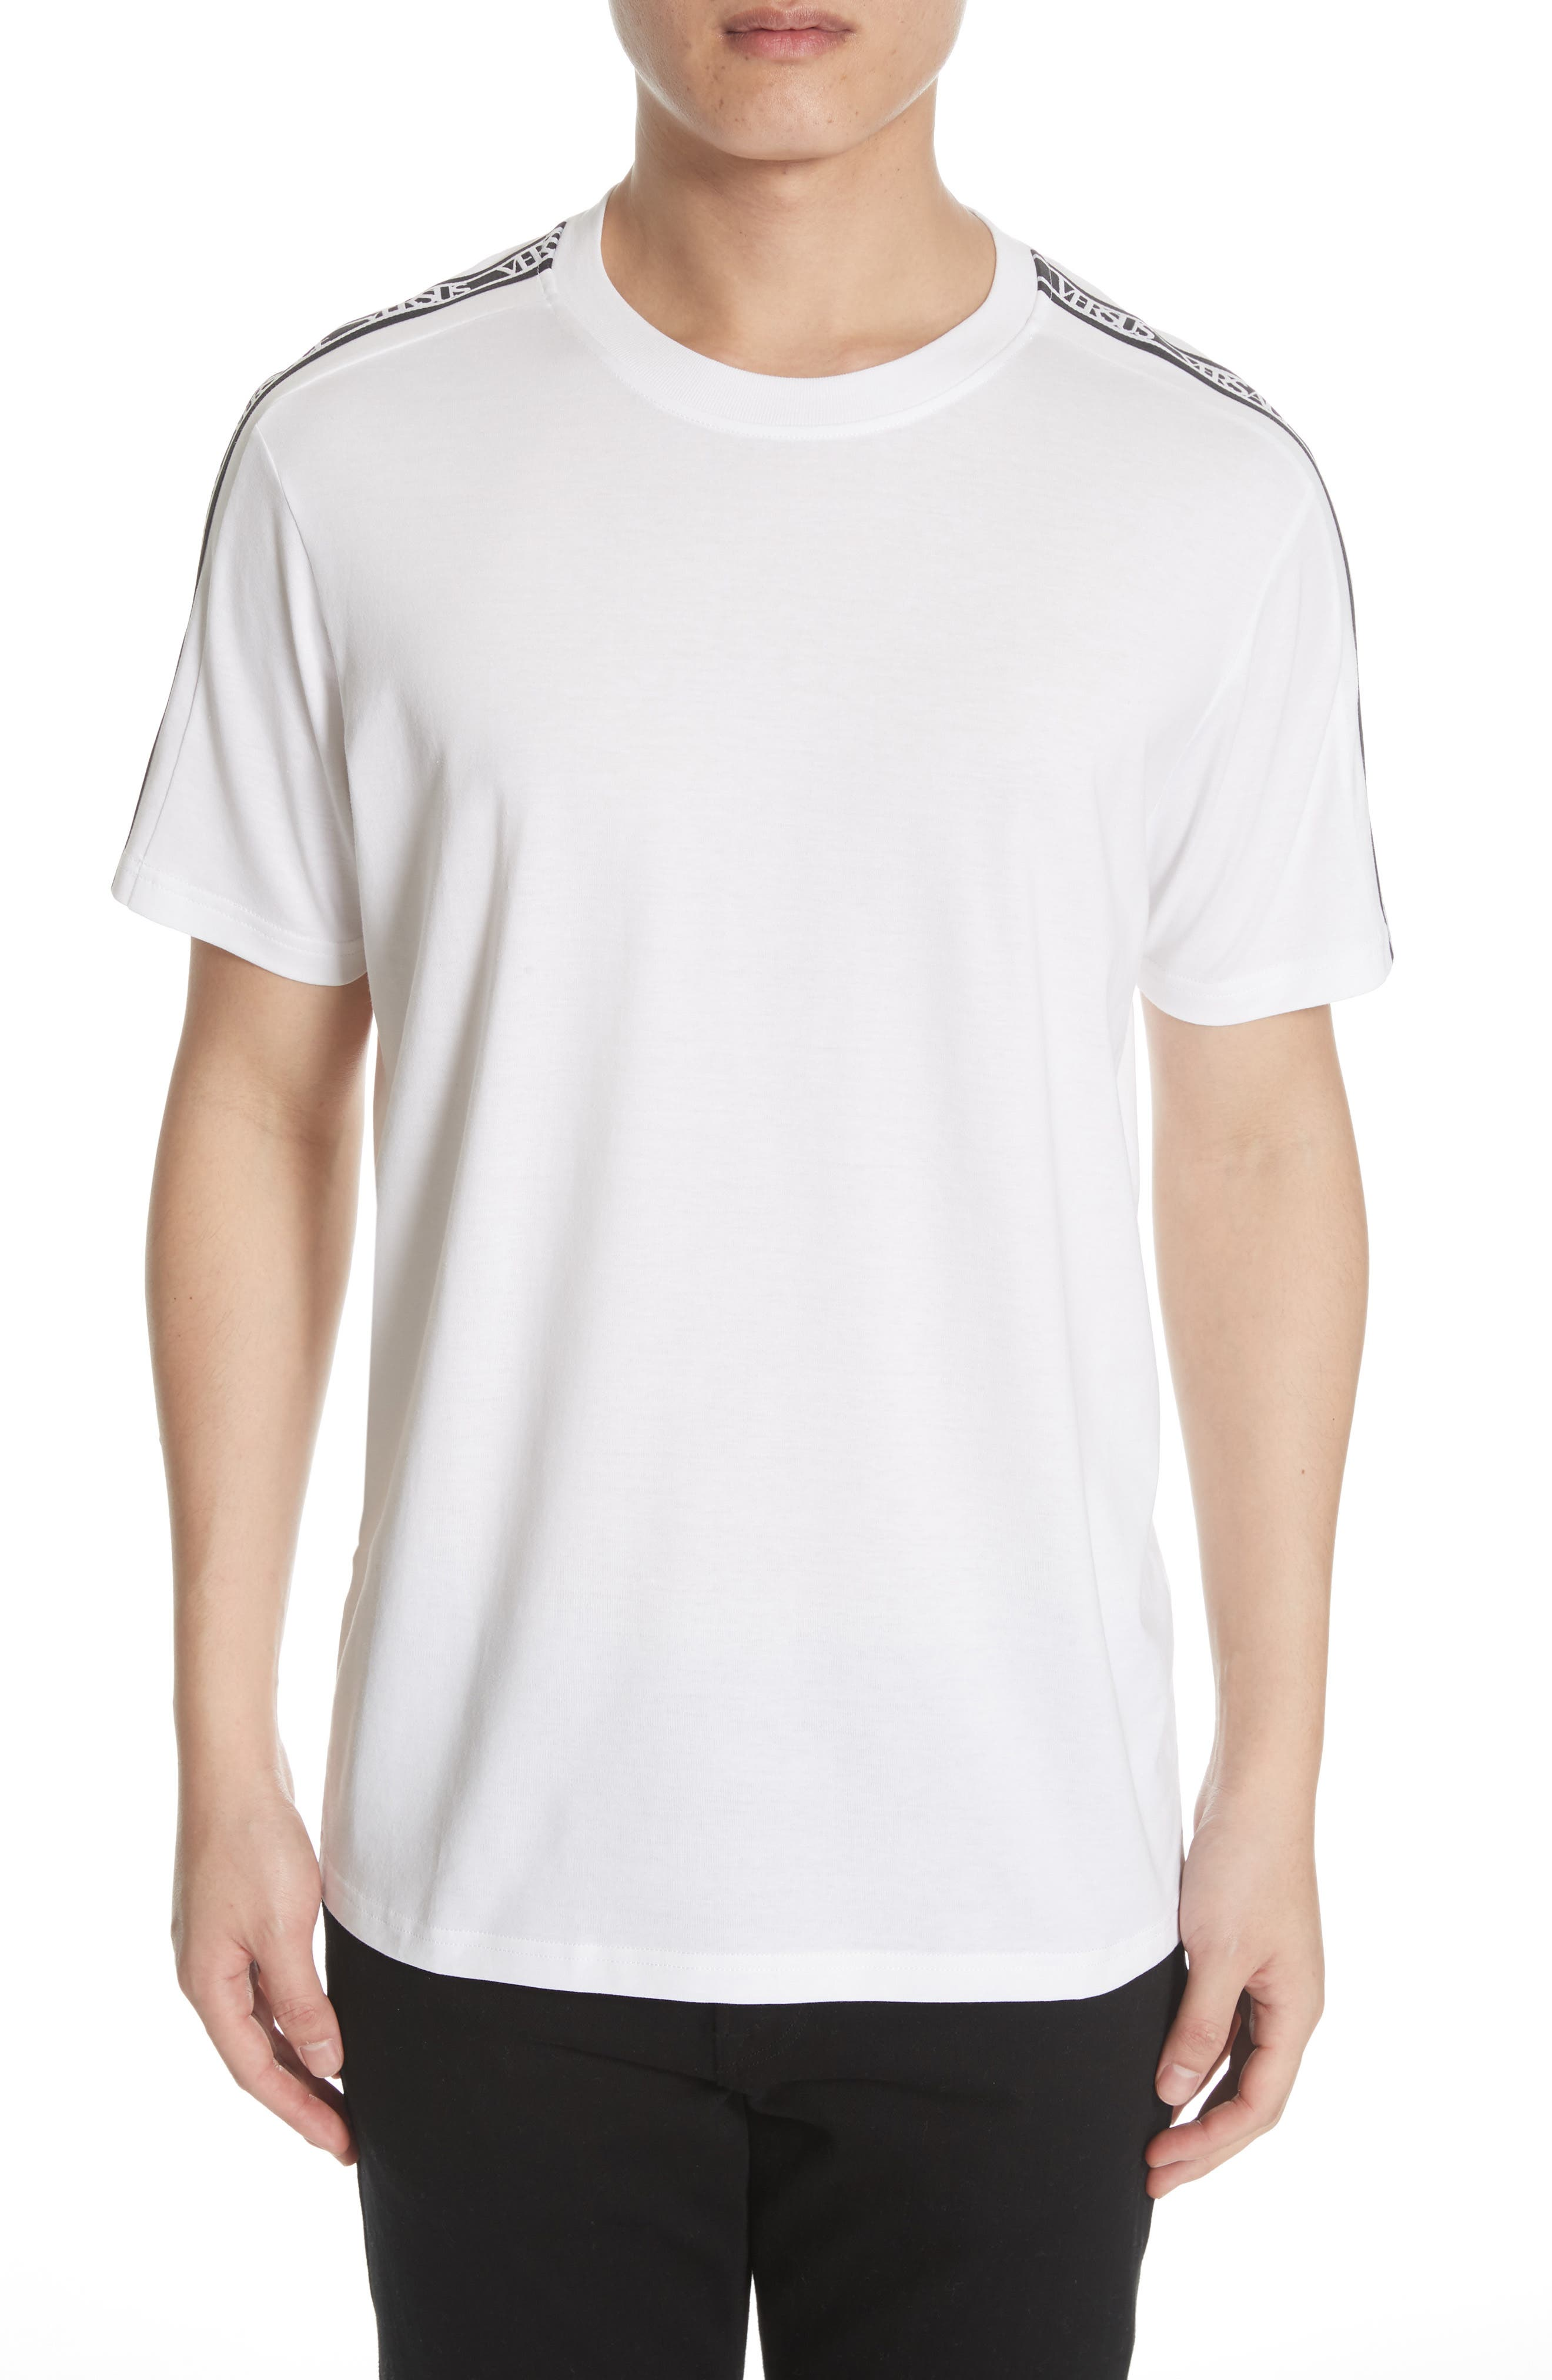 812ffc89 versace tshirts for men | Nordstrom